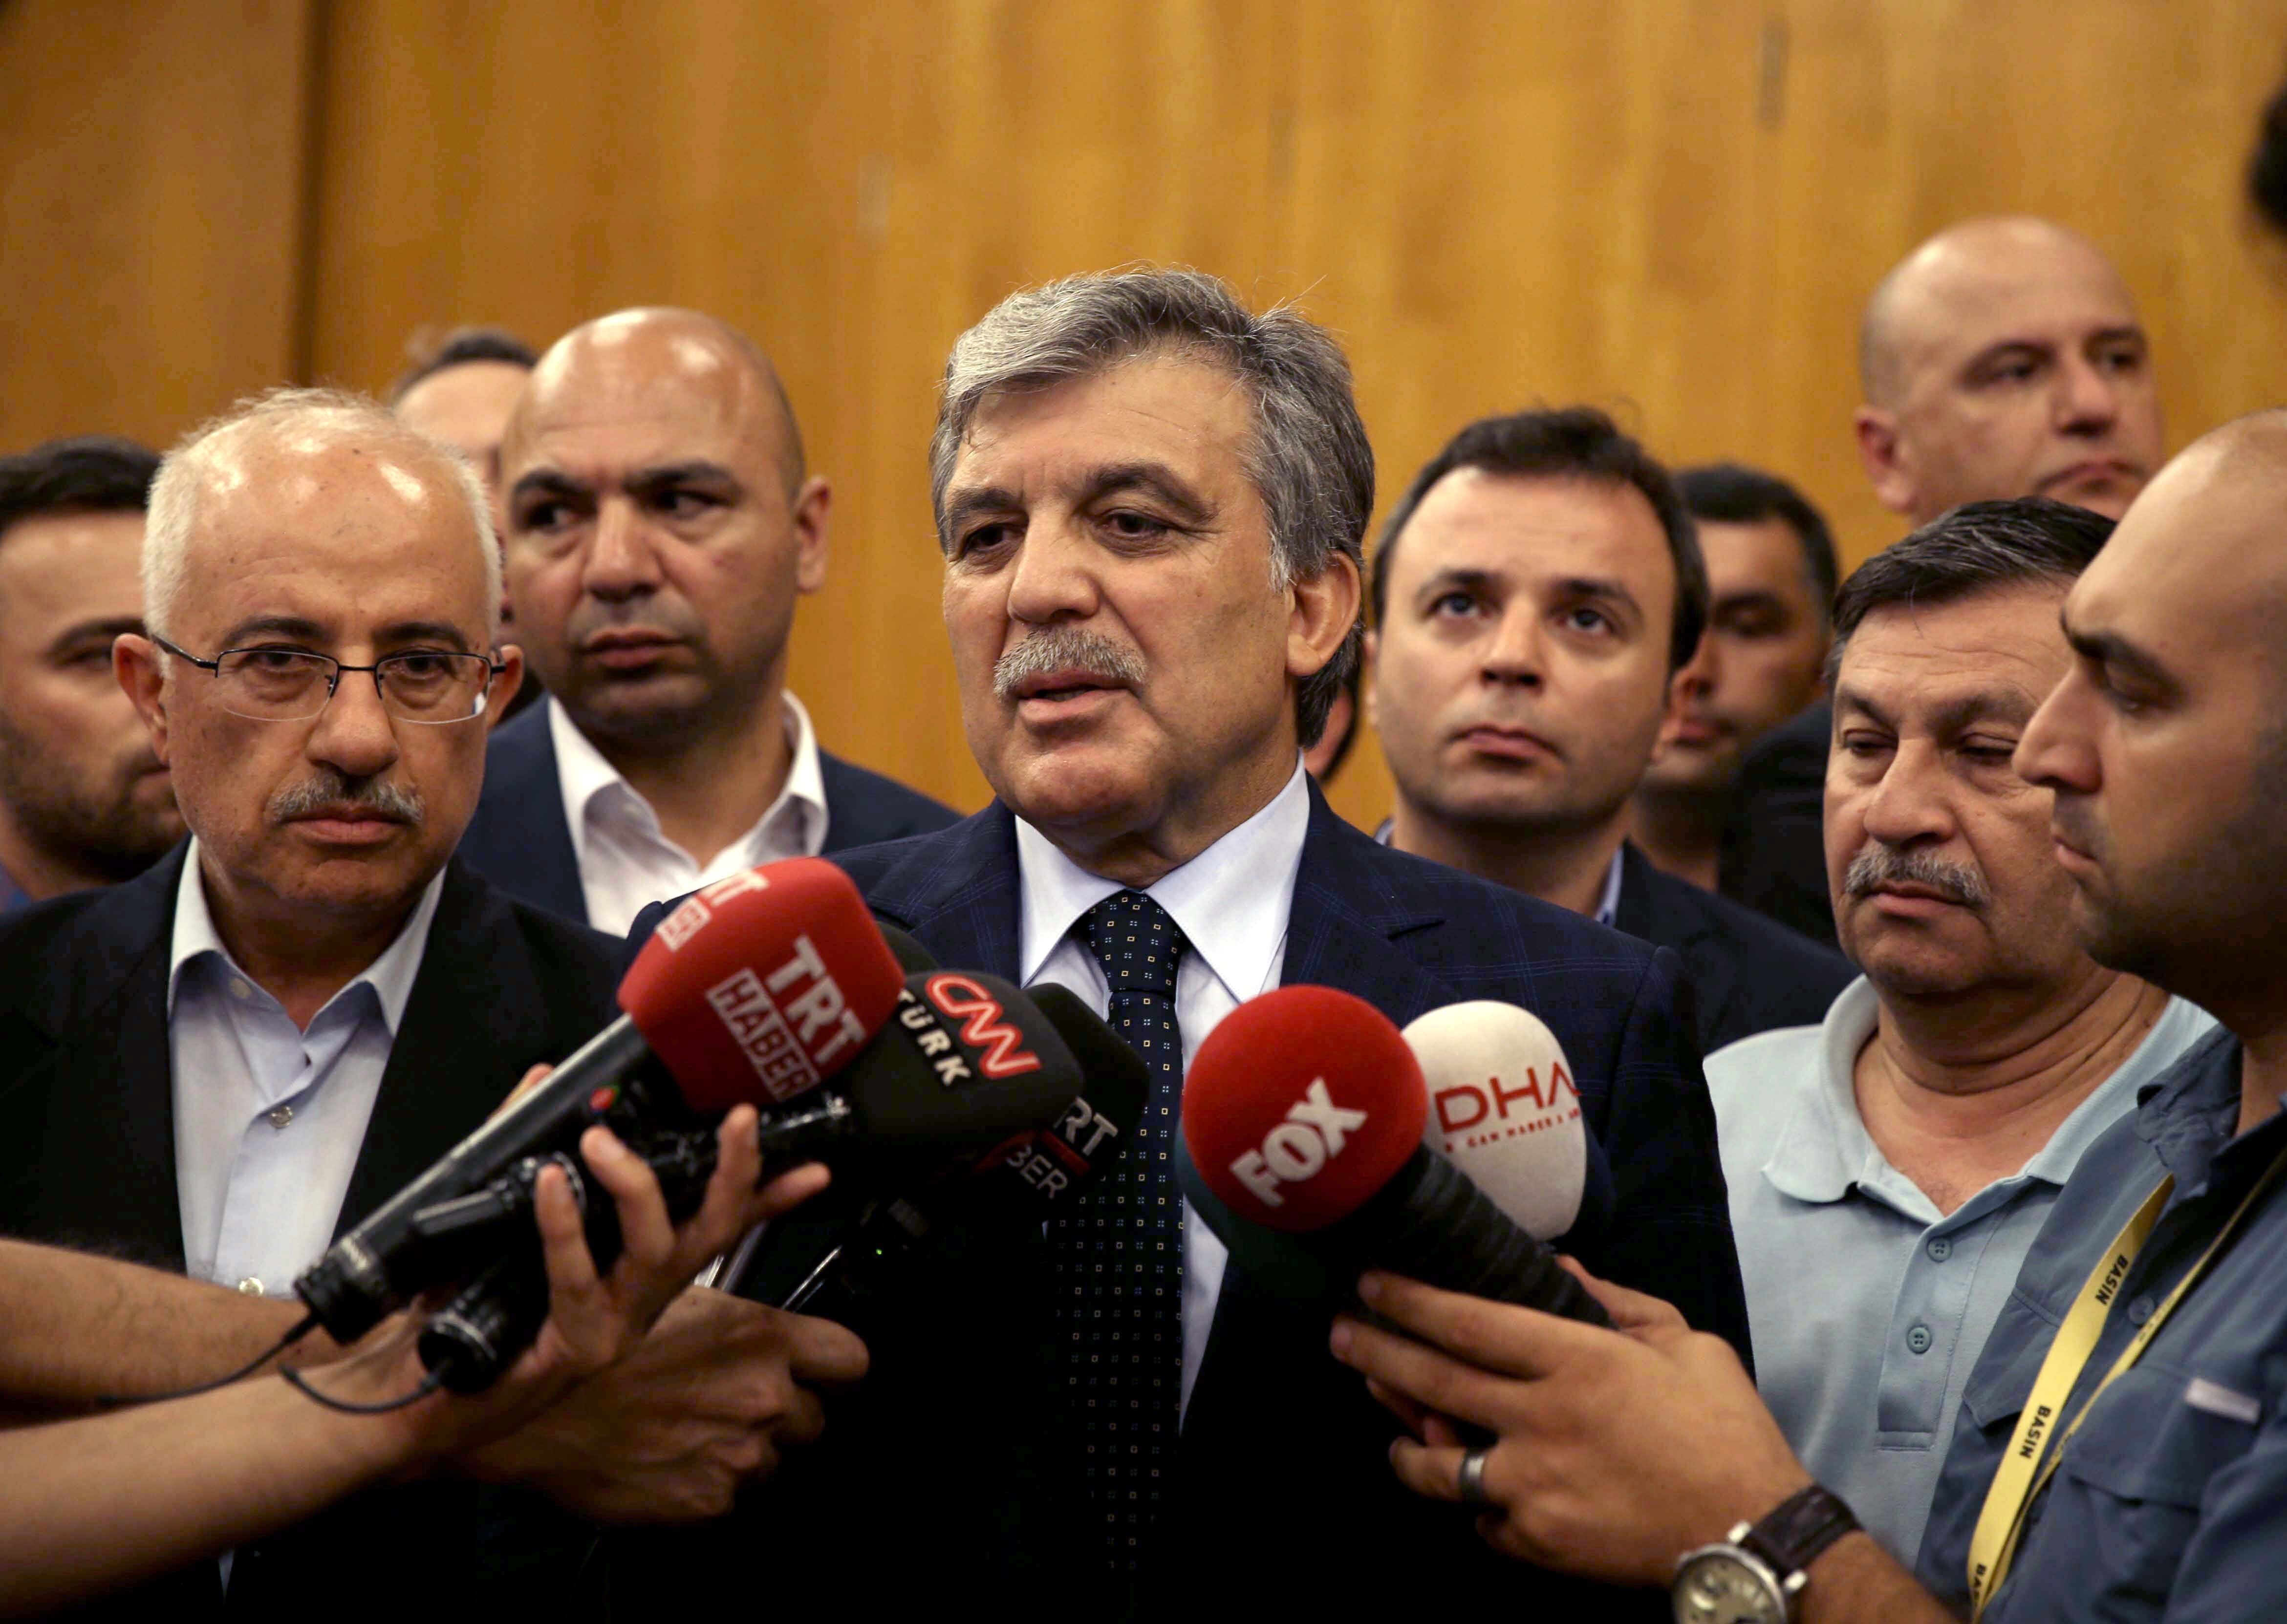 Former President Abdullah Gül also arrived at the Atatürk Airport State Guesthouse to meet with President Erdoğan. Gül made a statement to the press after the meeting.